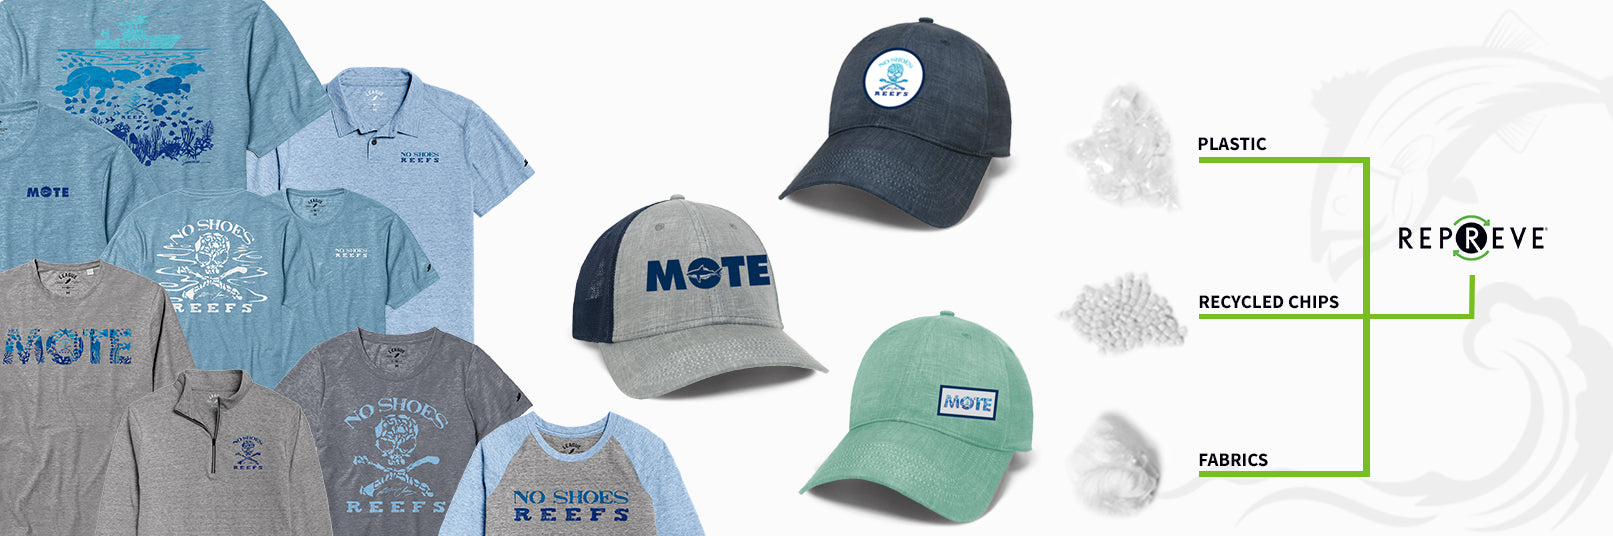 Plastic, recycled chips, and fabrics being used to make Repreve merchandise